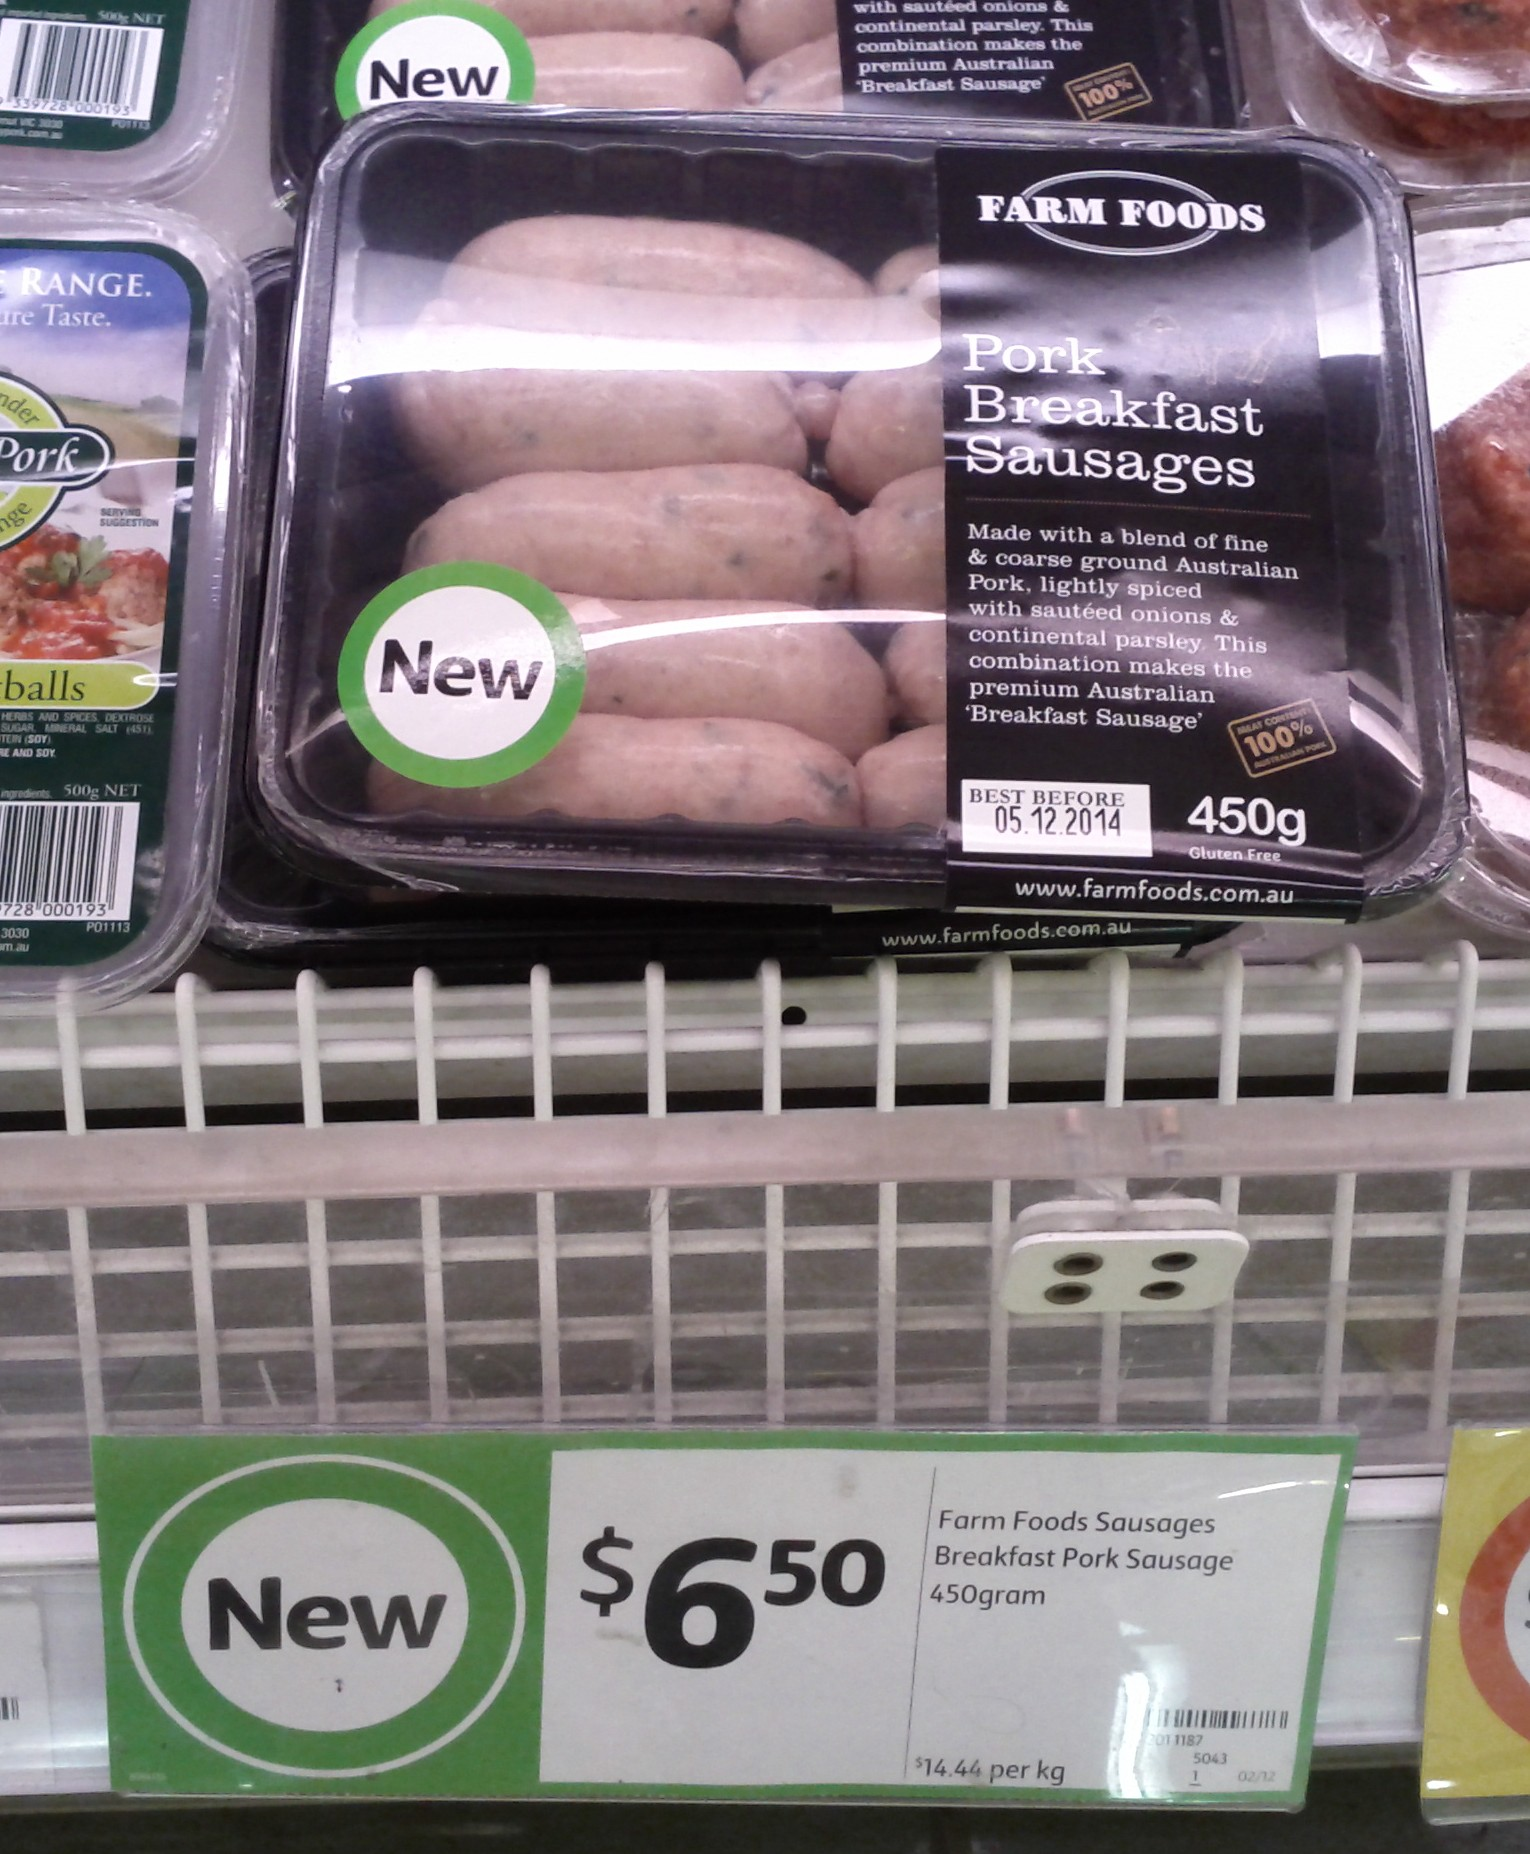 Farm Foods 450g Pork Breakfast Sausages